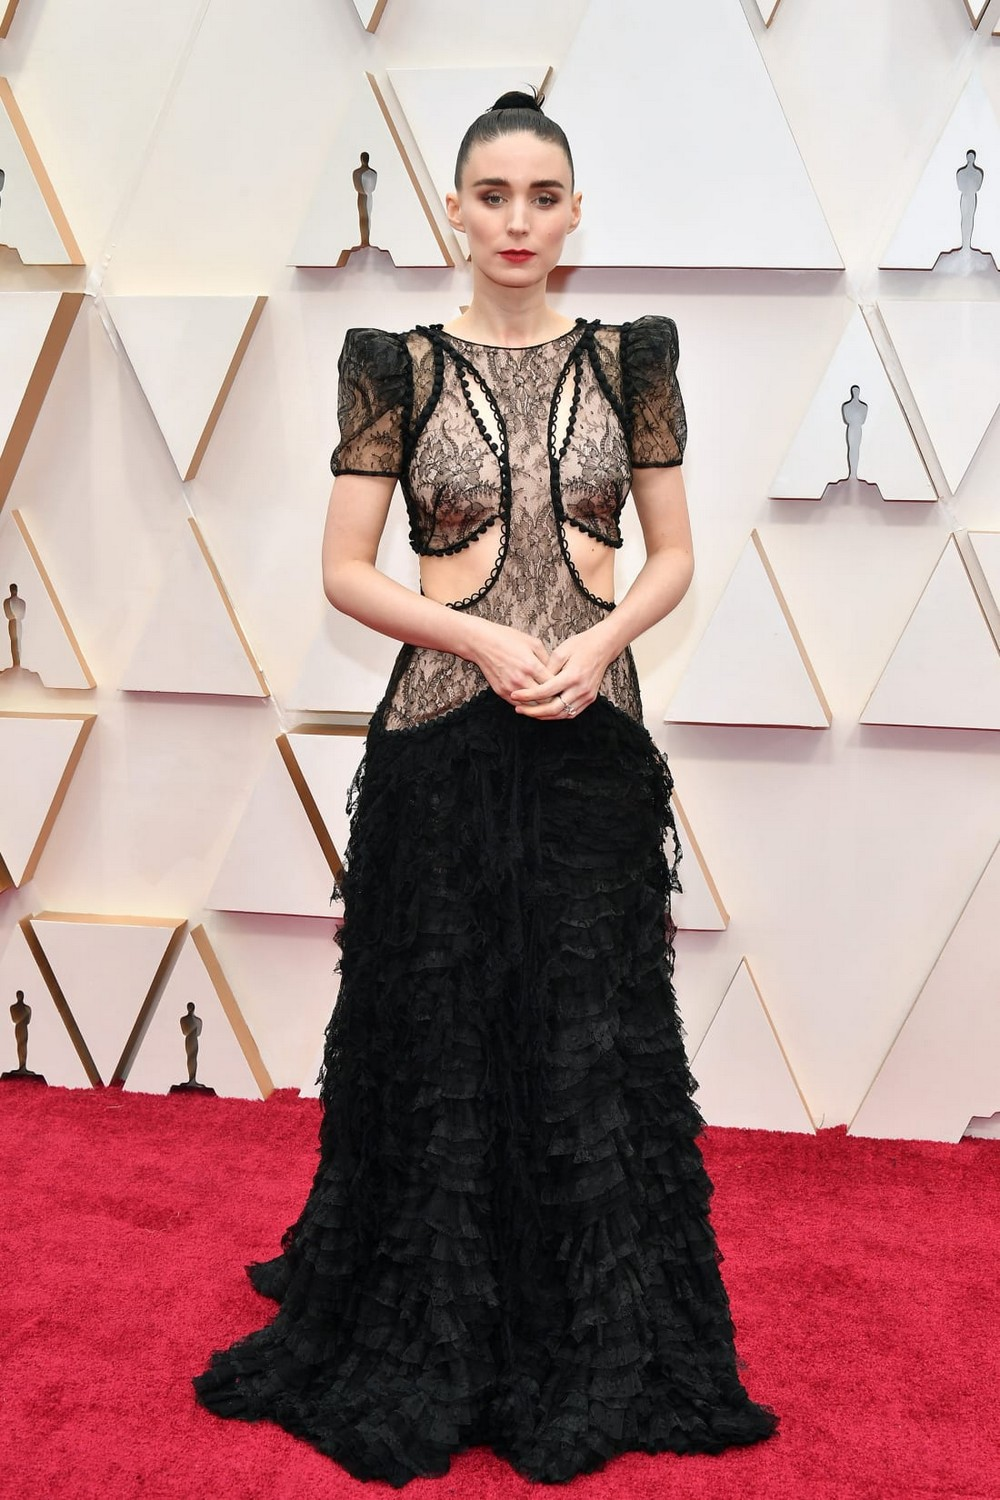 Oscars 2020 Sleeves were Certainly in Fashion at the Red Carpet 2 oscars 2020 Oscars 2020: Statement Sleeves in Fashion on the Red Carpet Oscars 2020 Sleeves were Certainly in Fashion at the Red Carpet 2